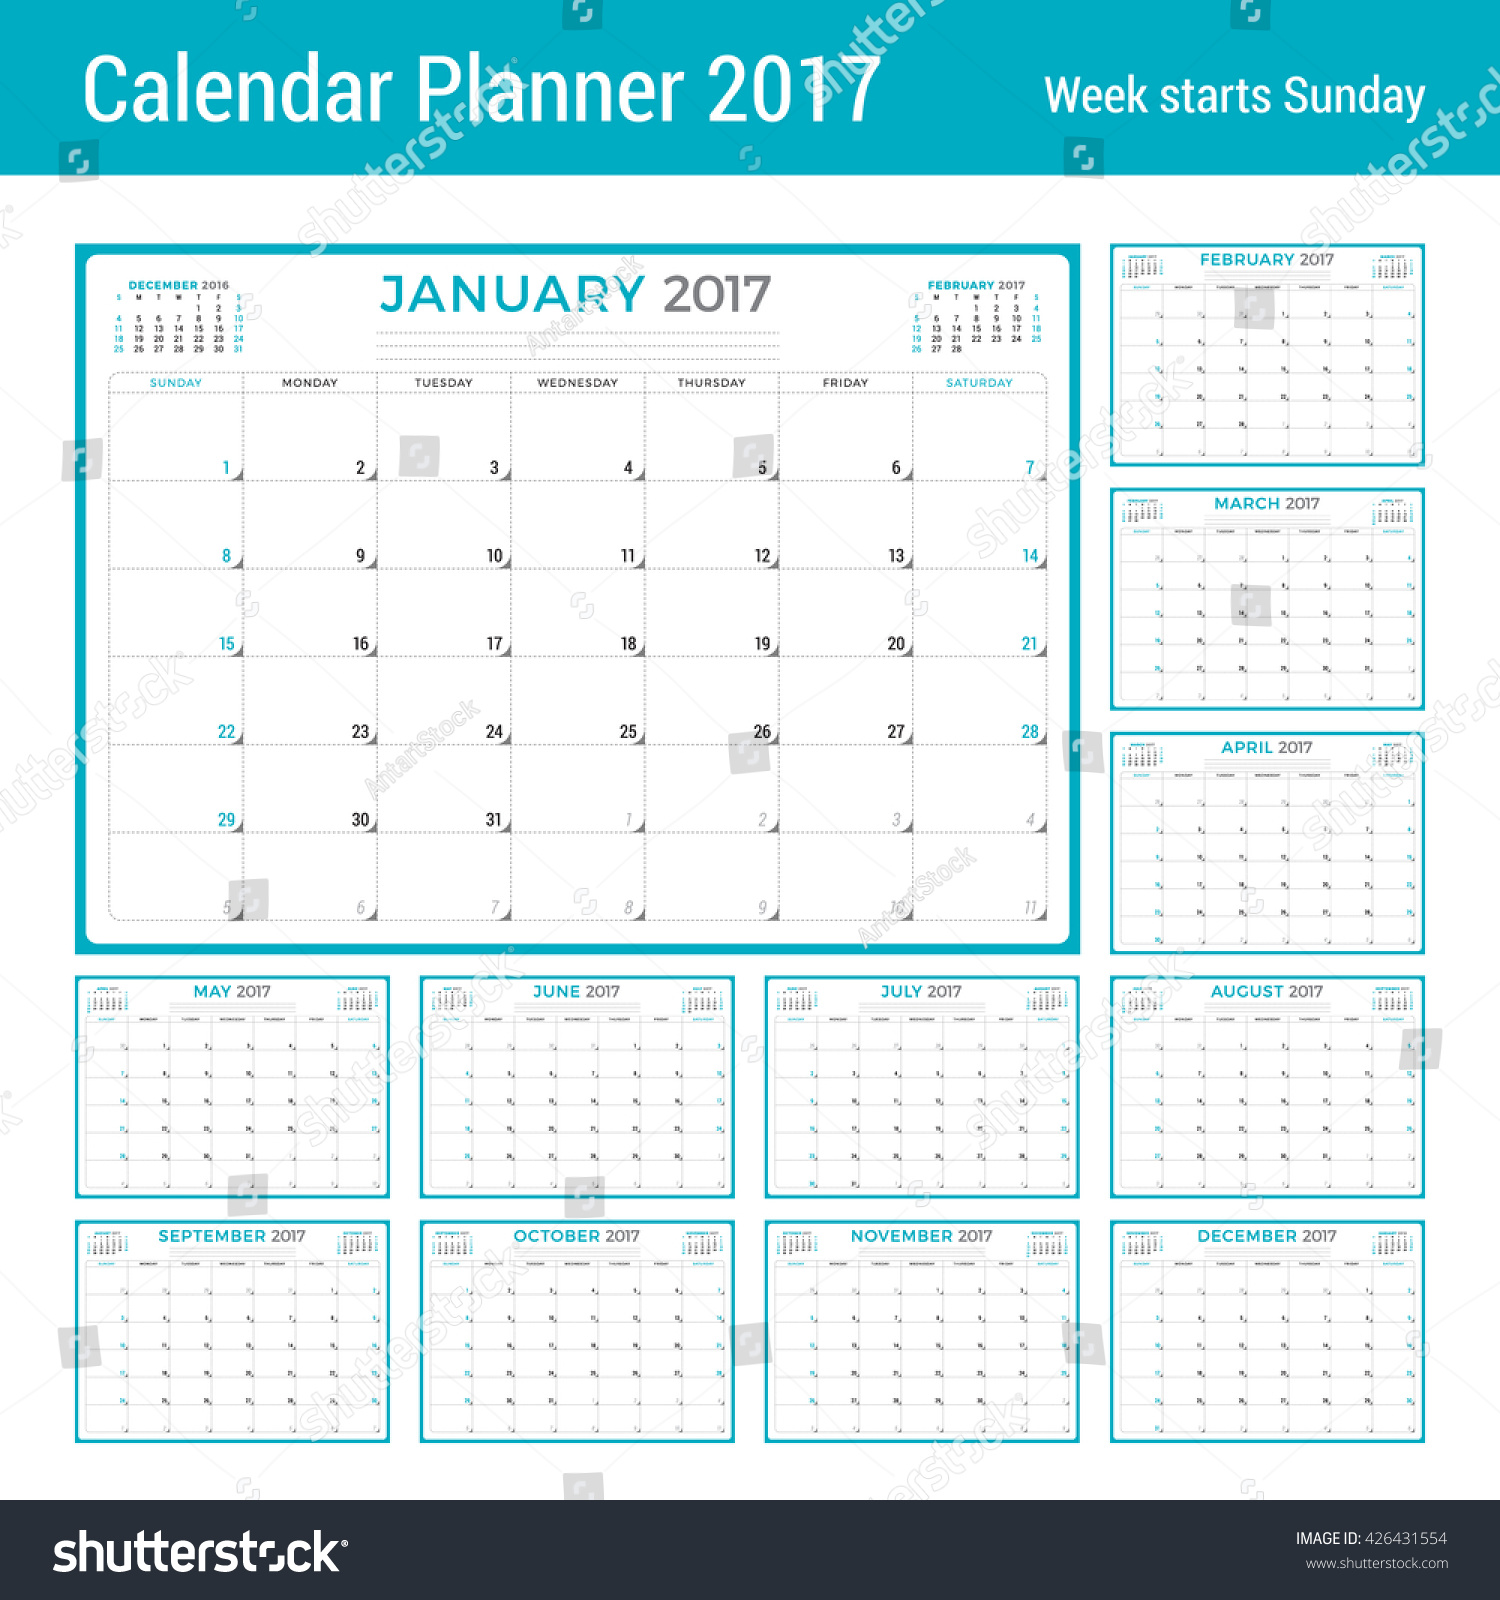 Weekly Calendar Vector : Calendar planner year vector design stock